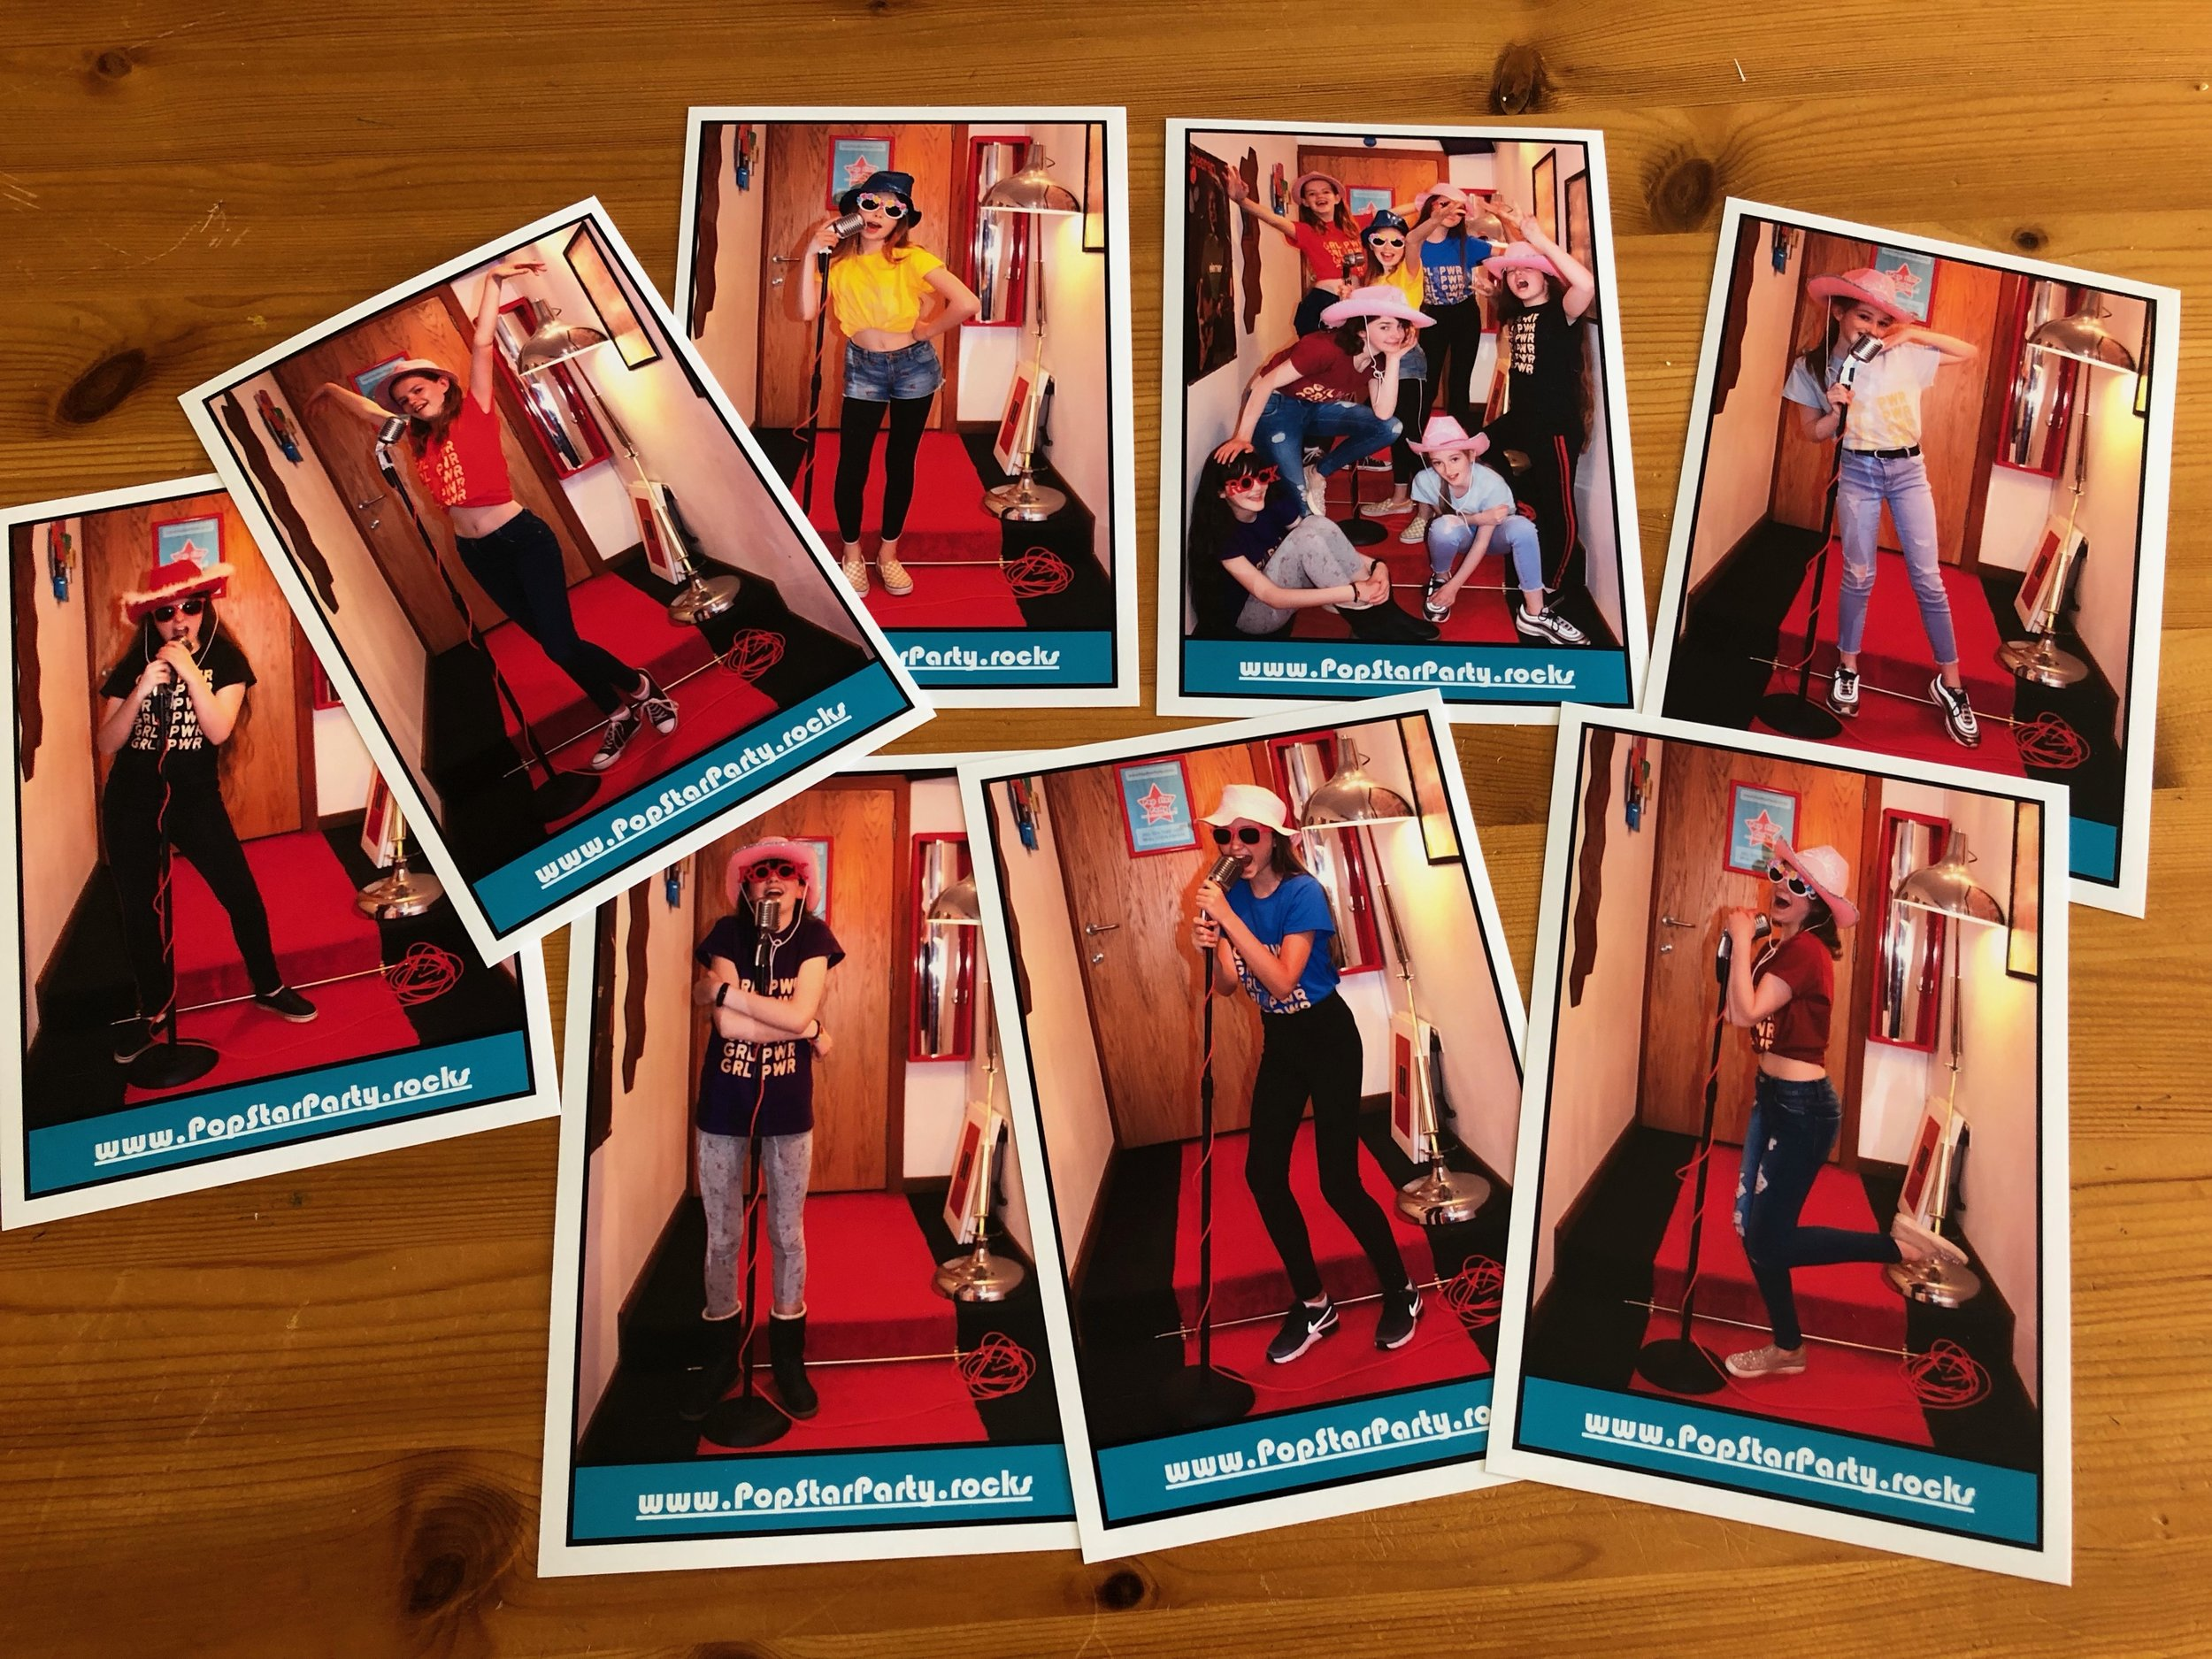 Pop Star Party - Prints from Red Carpet PhotoShoot.jpeg